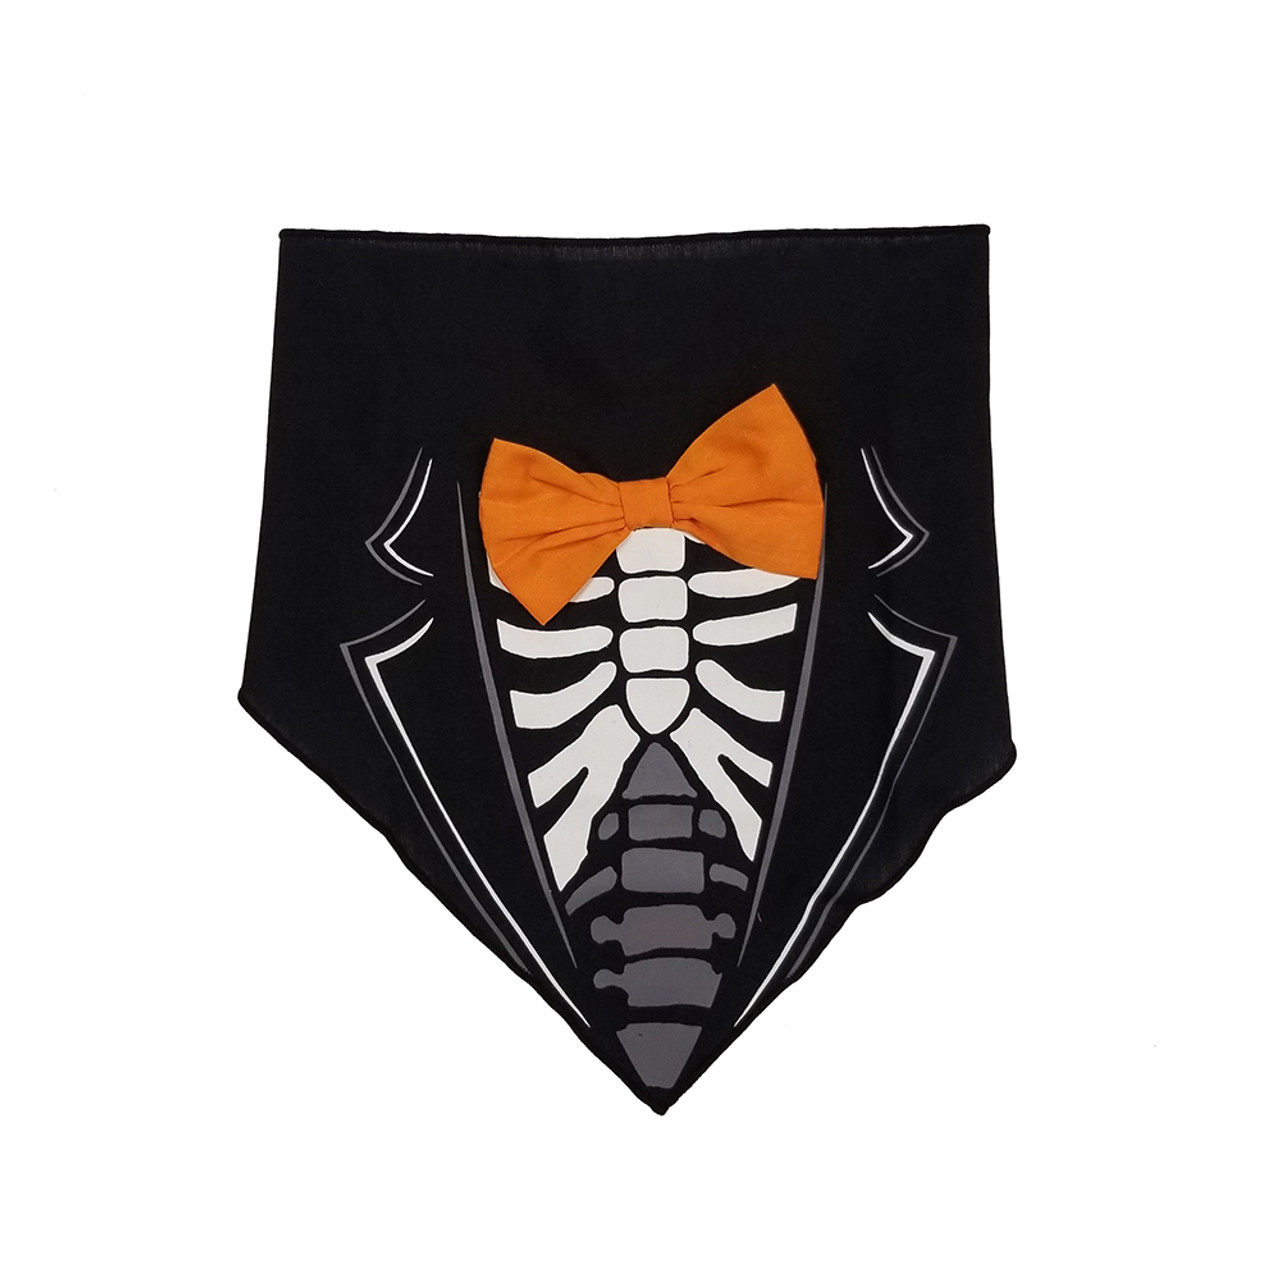 SimplyDog Dandy Skeleton Bow Dog Bandana